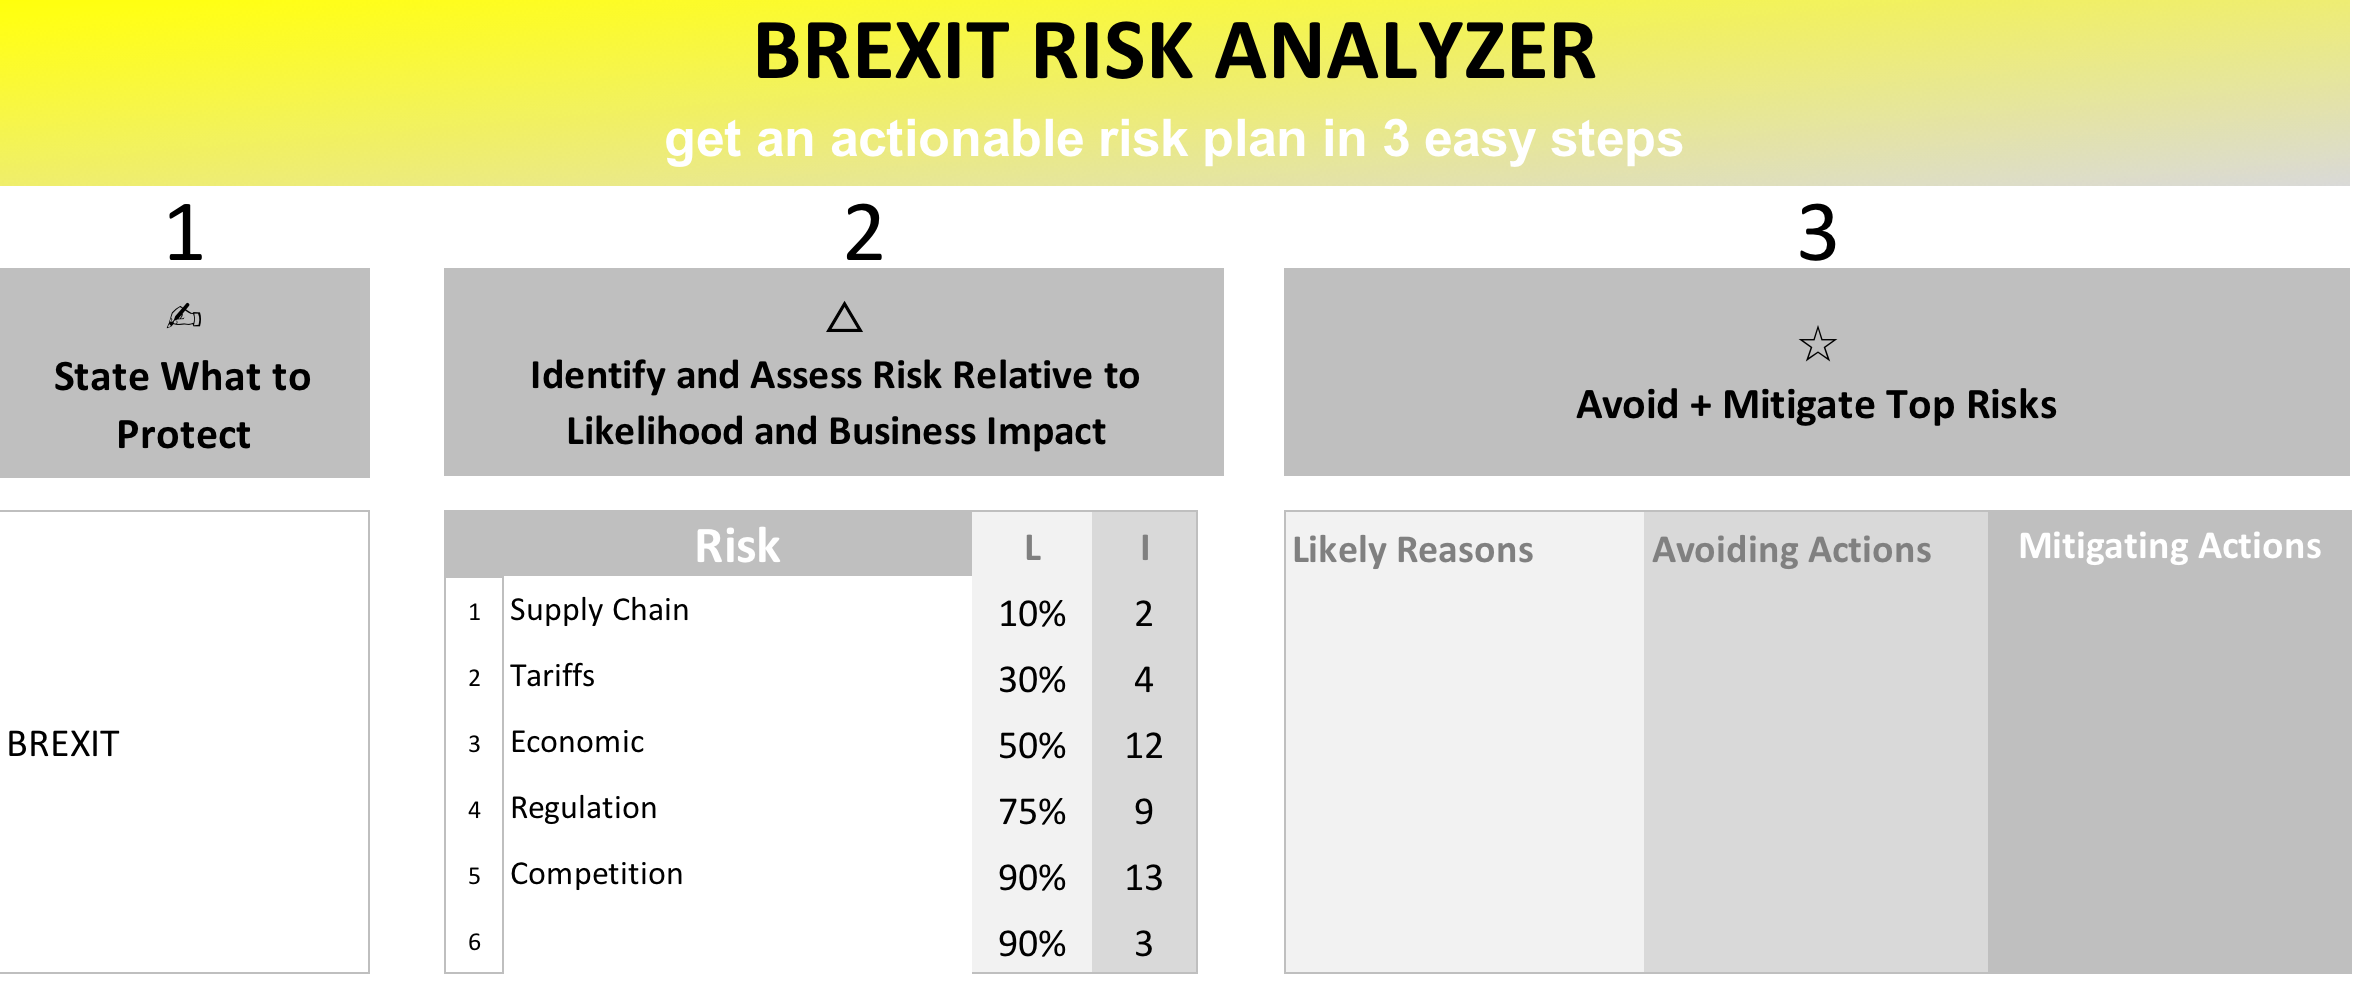 brexit risk analyzer